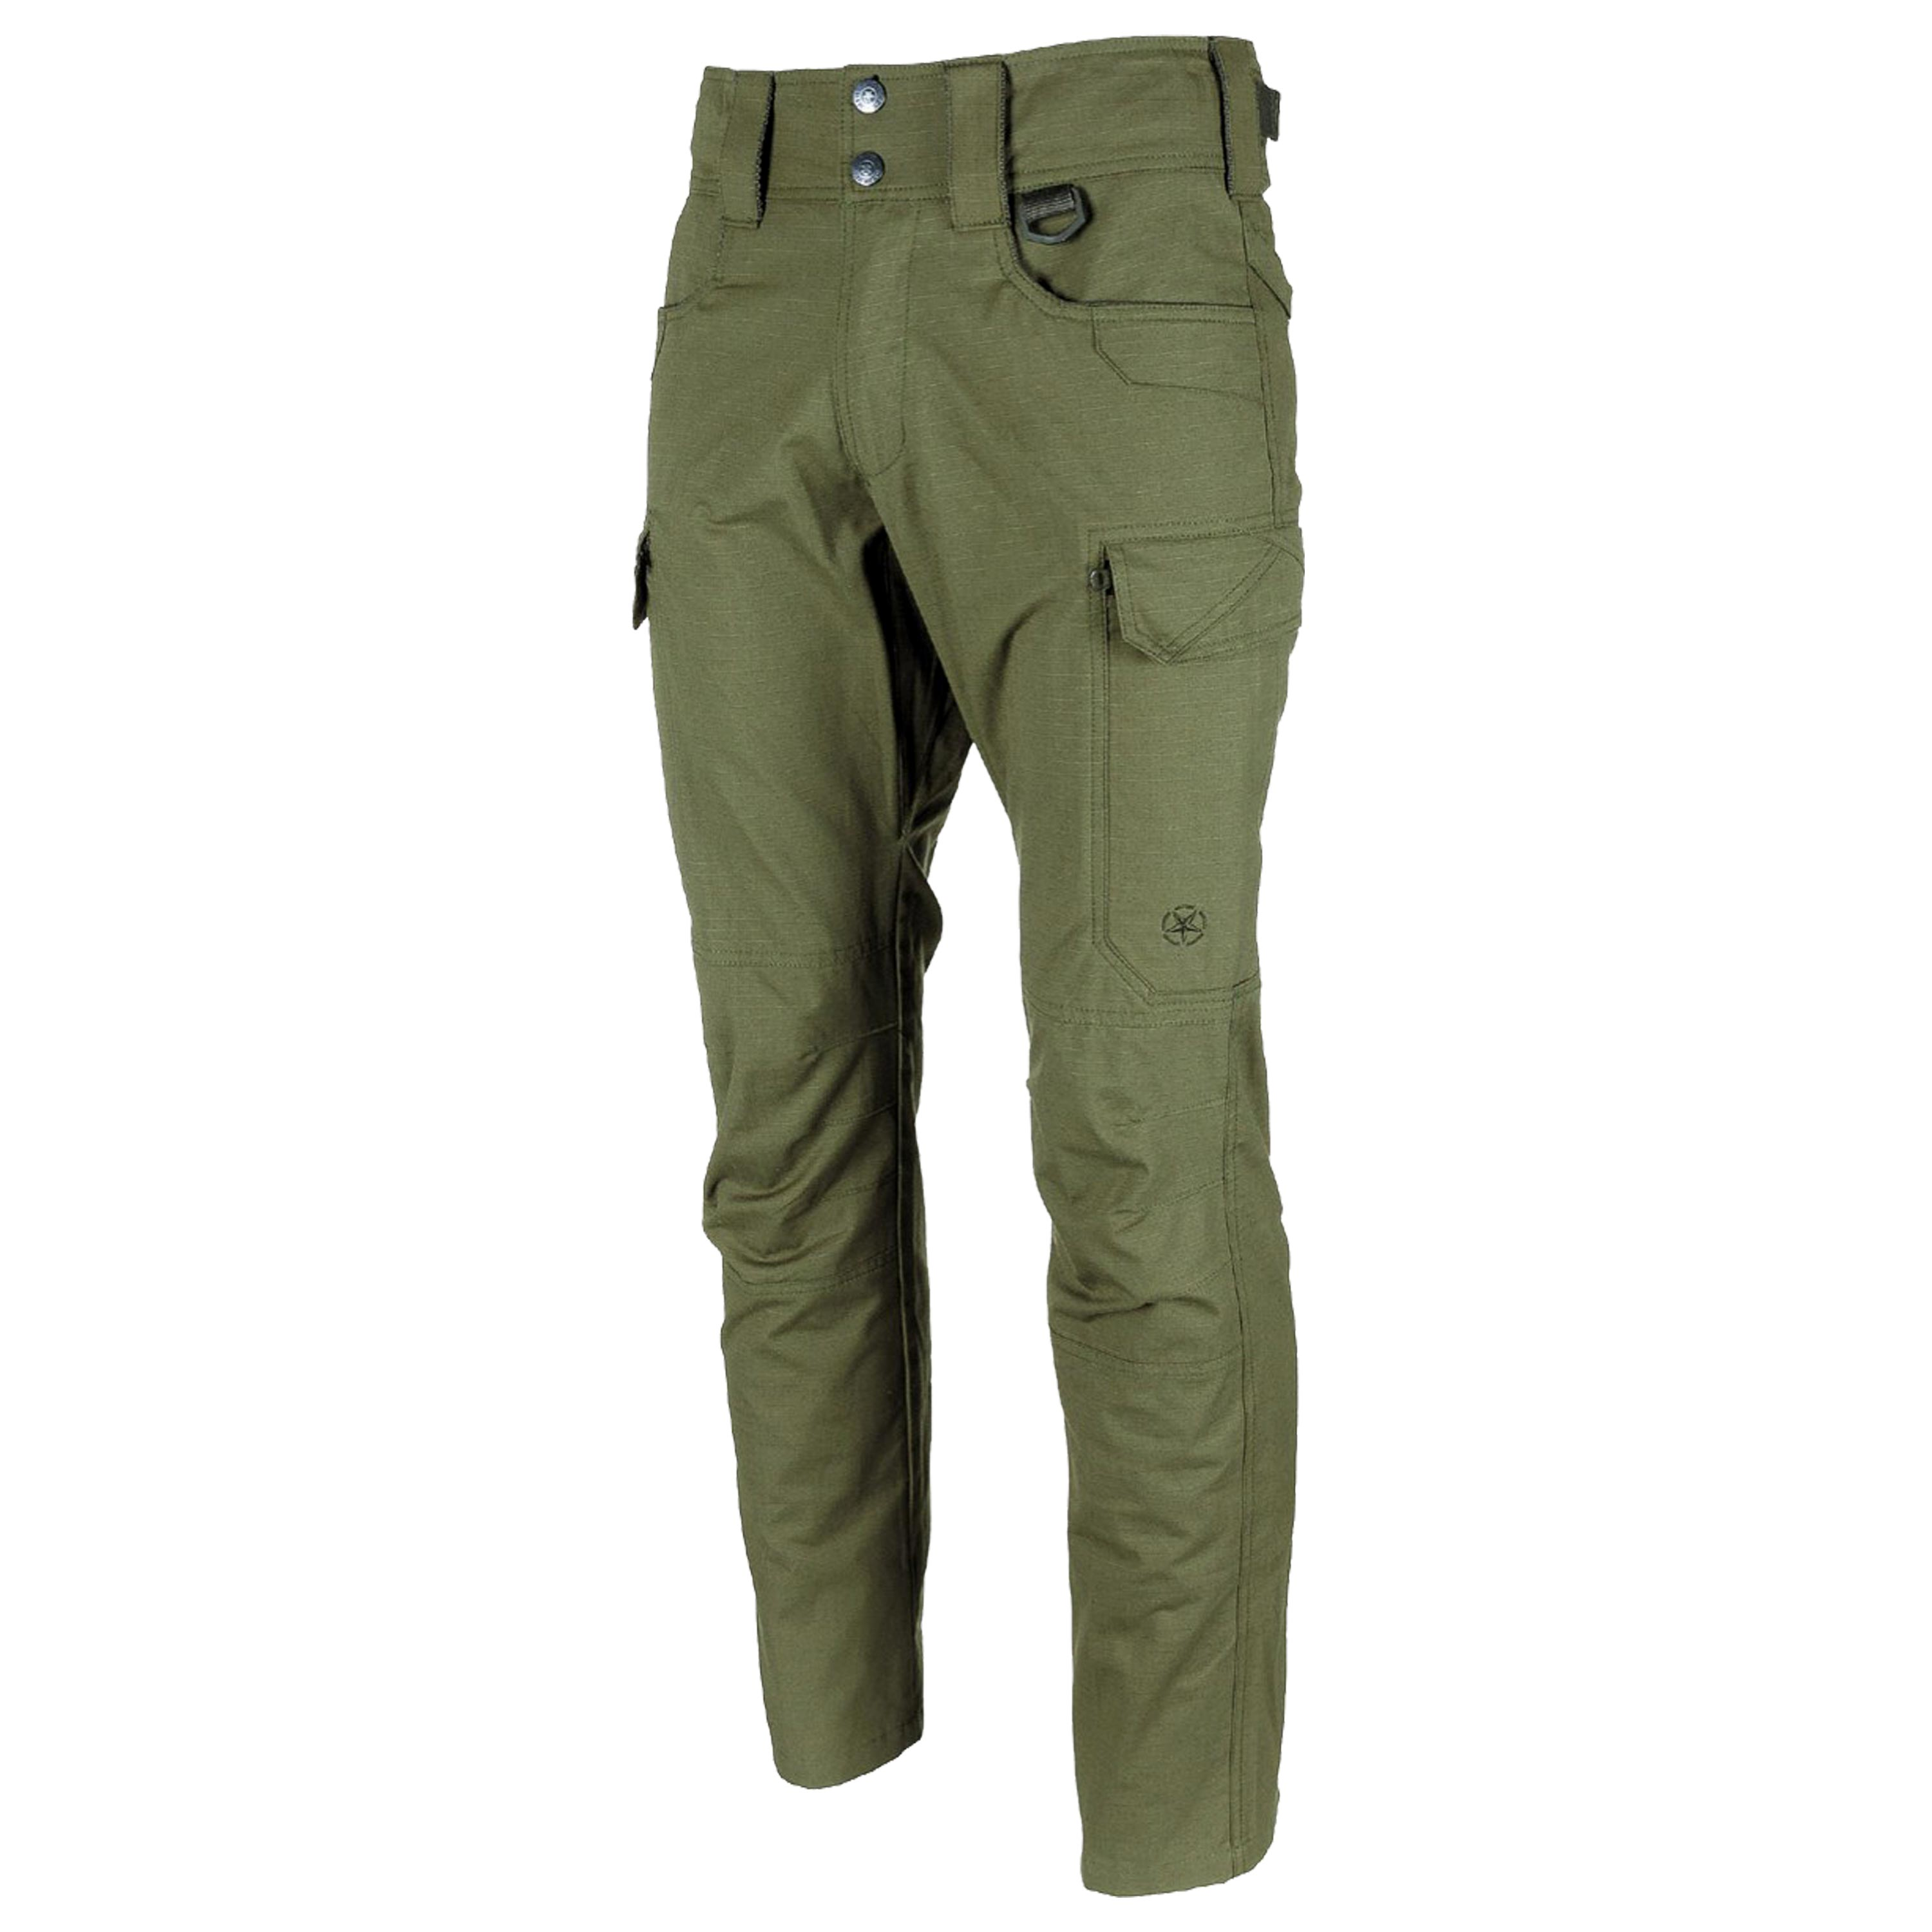 MFH Hose Tactical Storm RipStop oliv